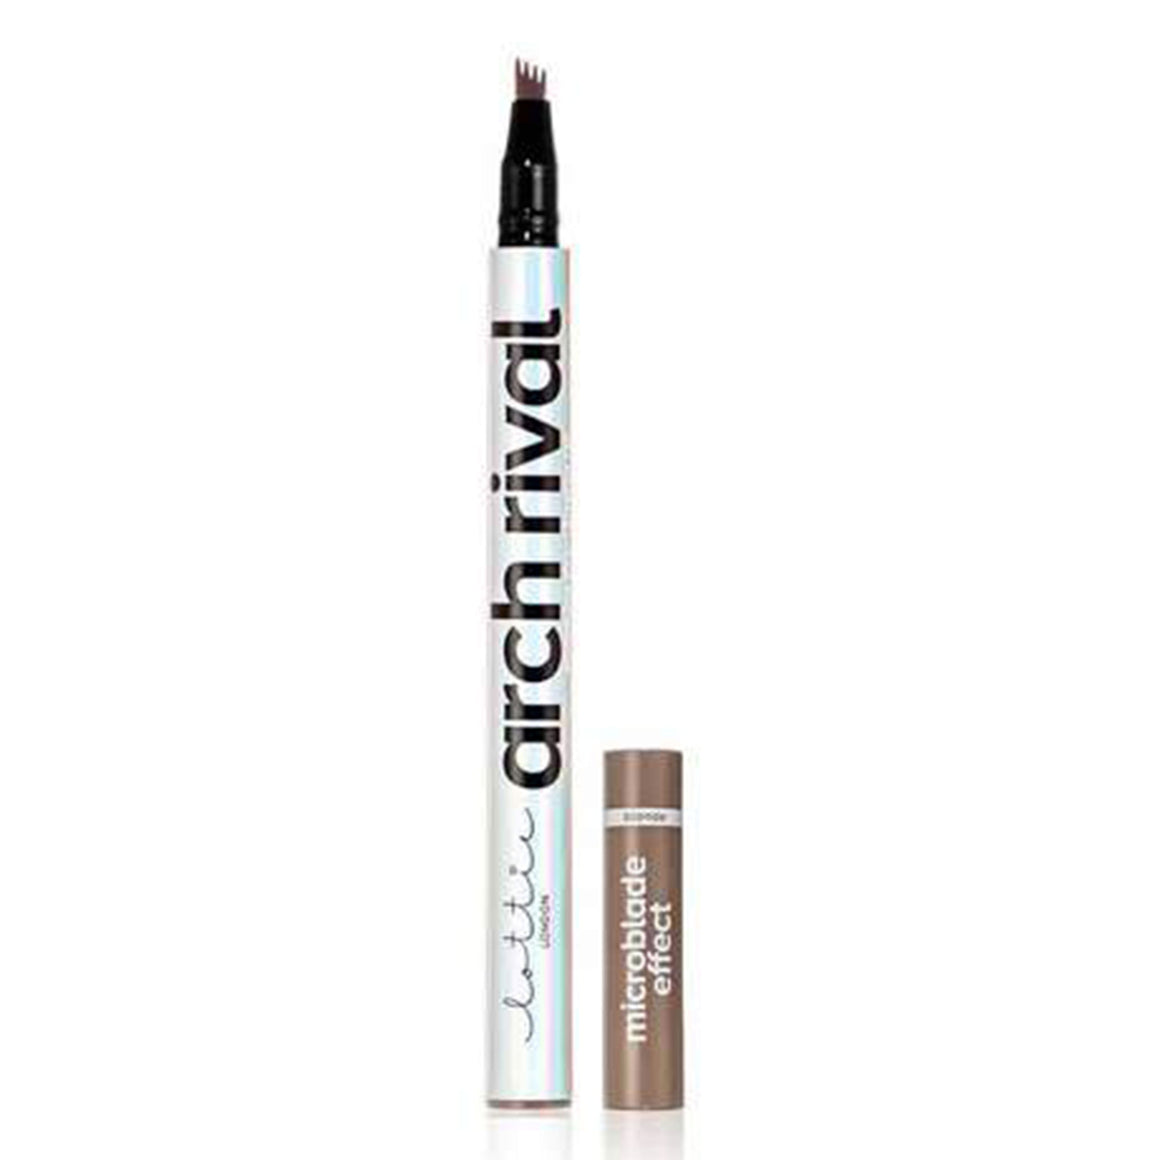 Lottie London - Arch Rival Microblade Effect Eyebrow Pen - Ebony